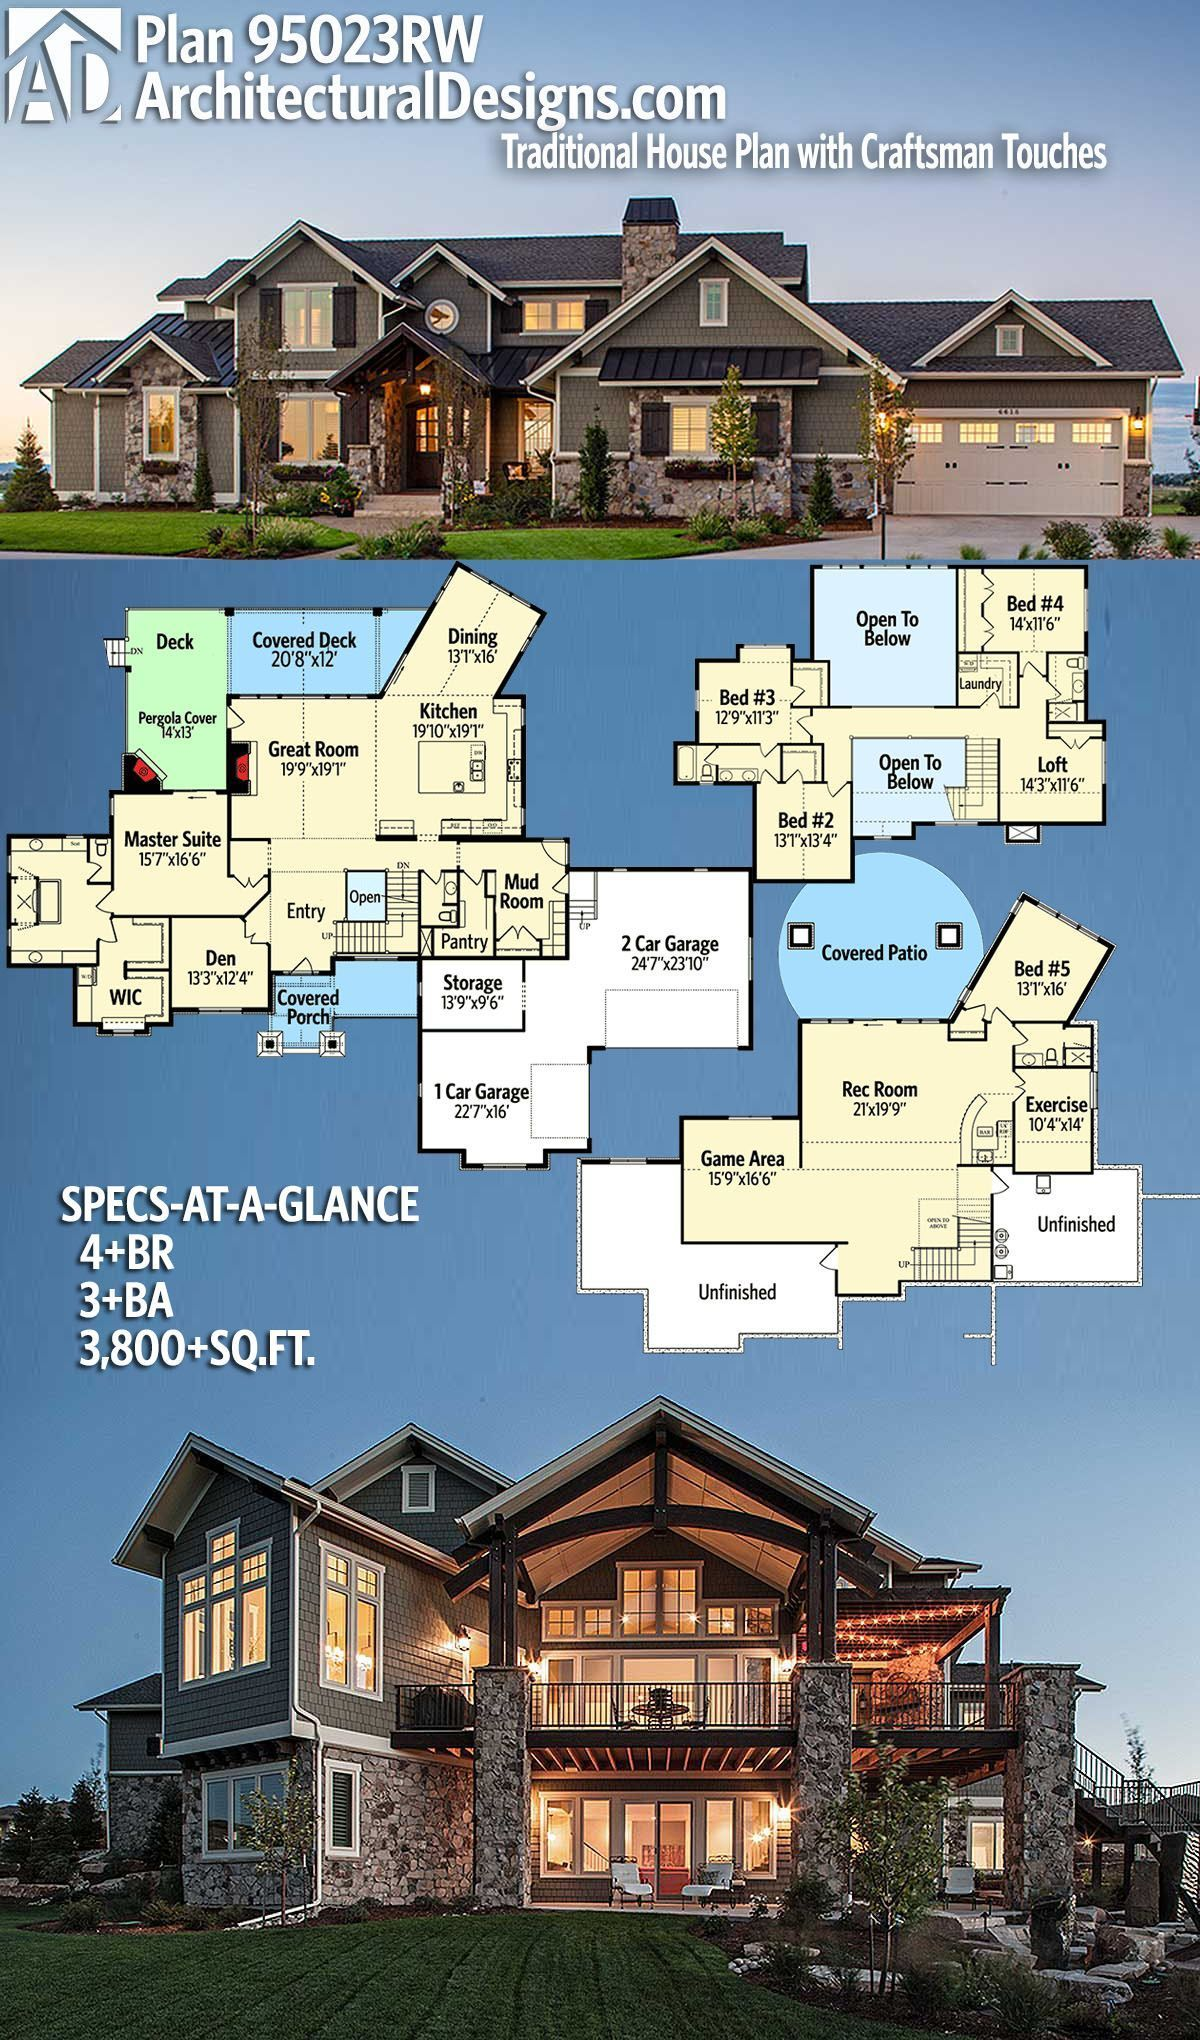 Architectural designs house plan rw br ba also wp traditional with extensive porches rh pinterest